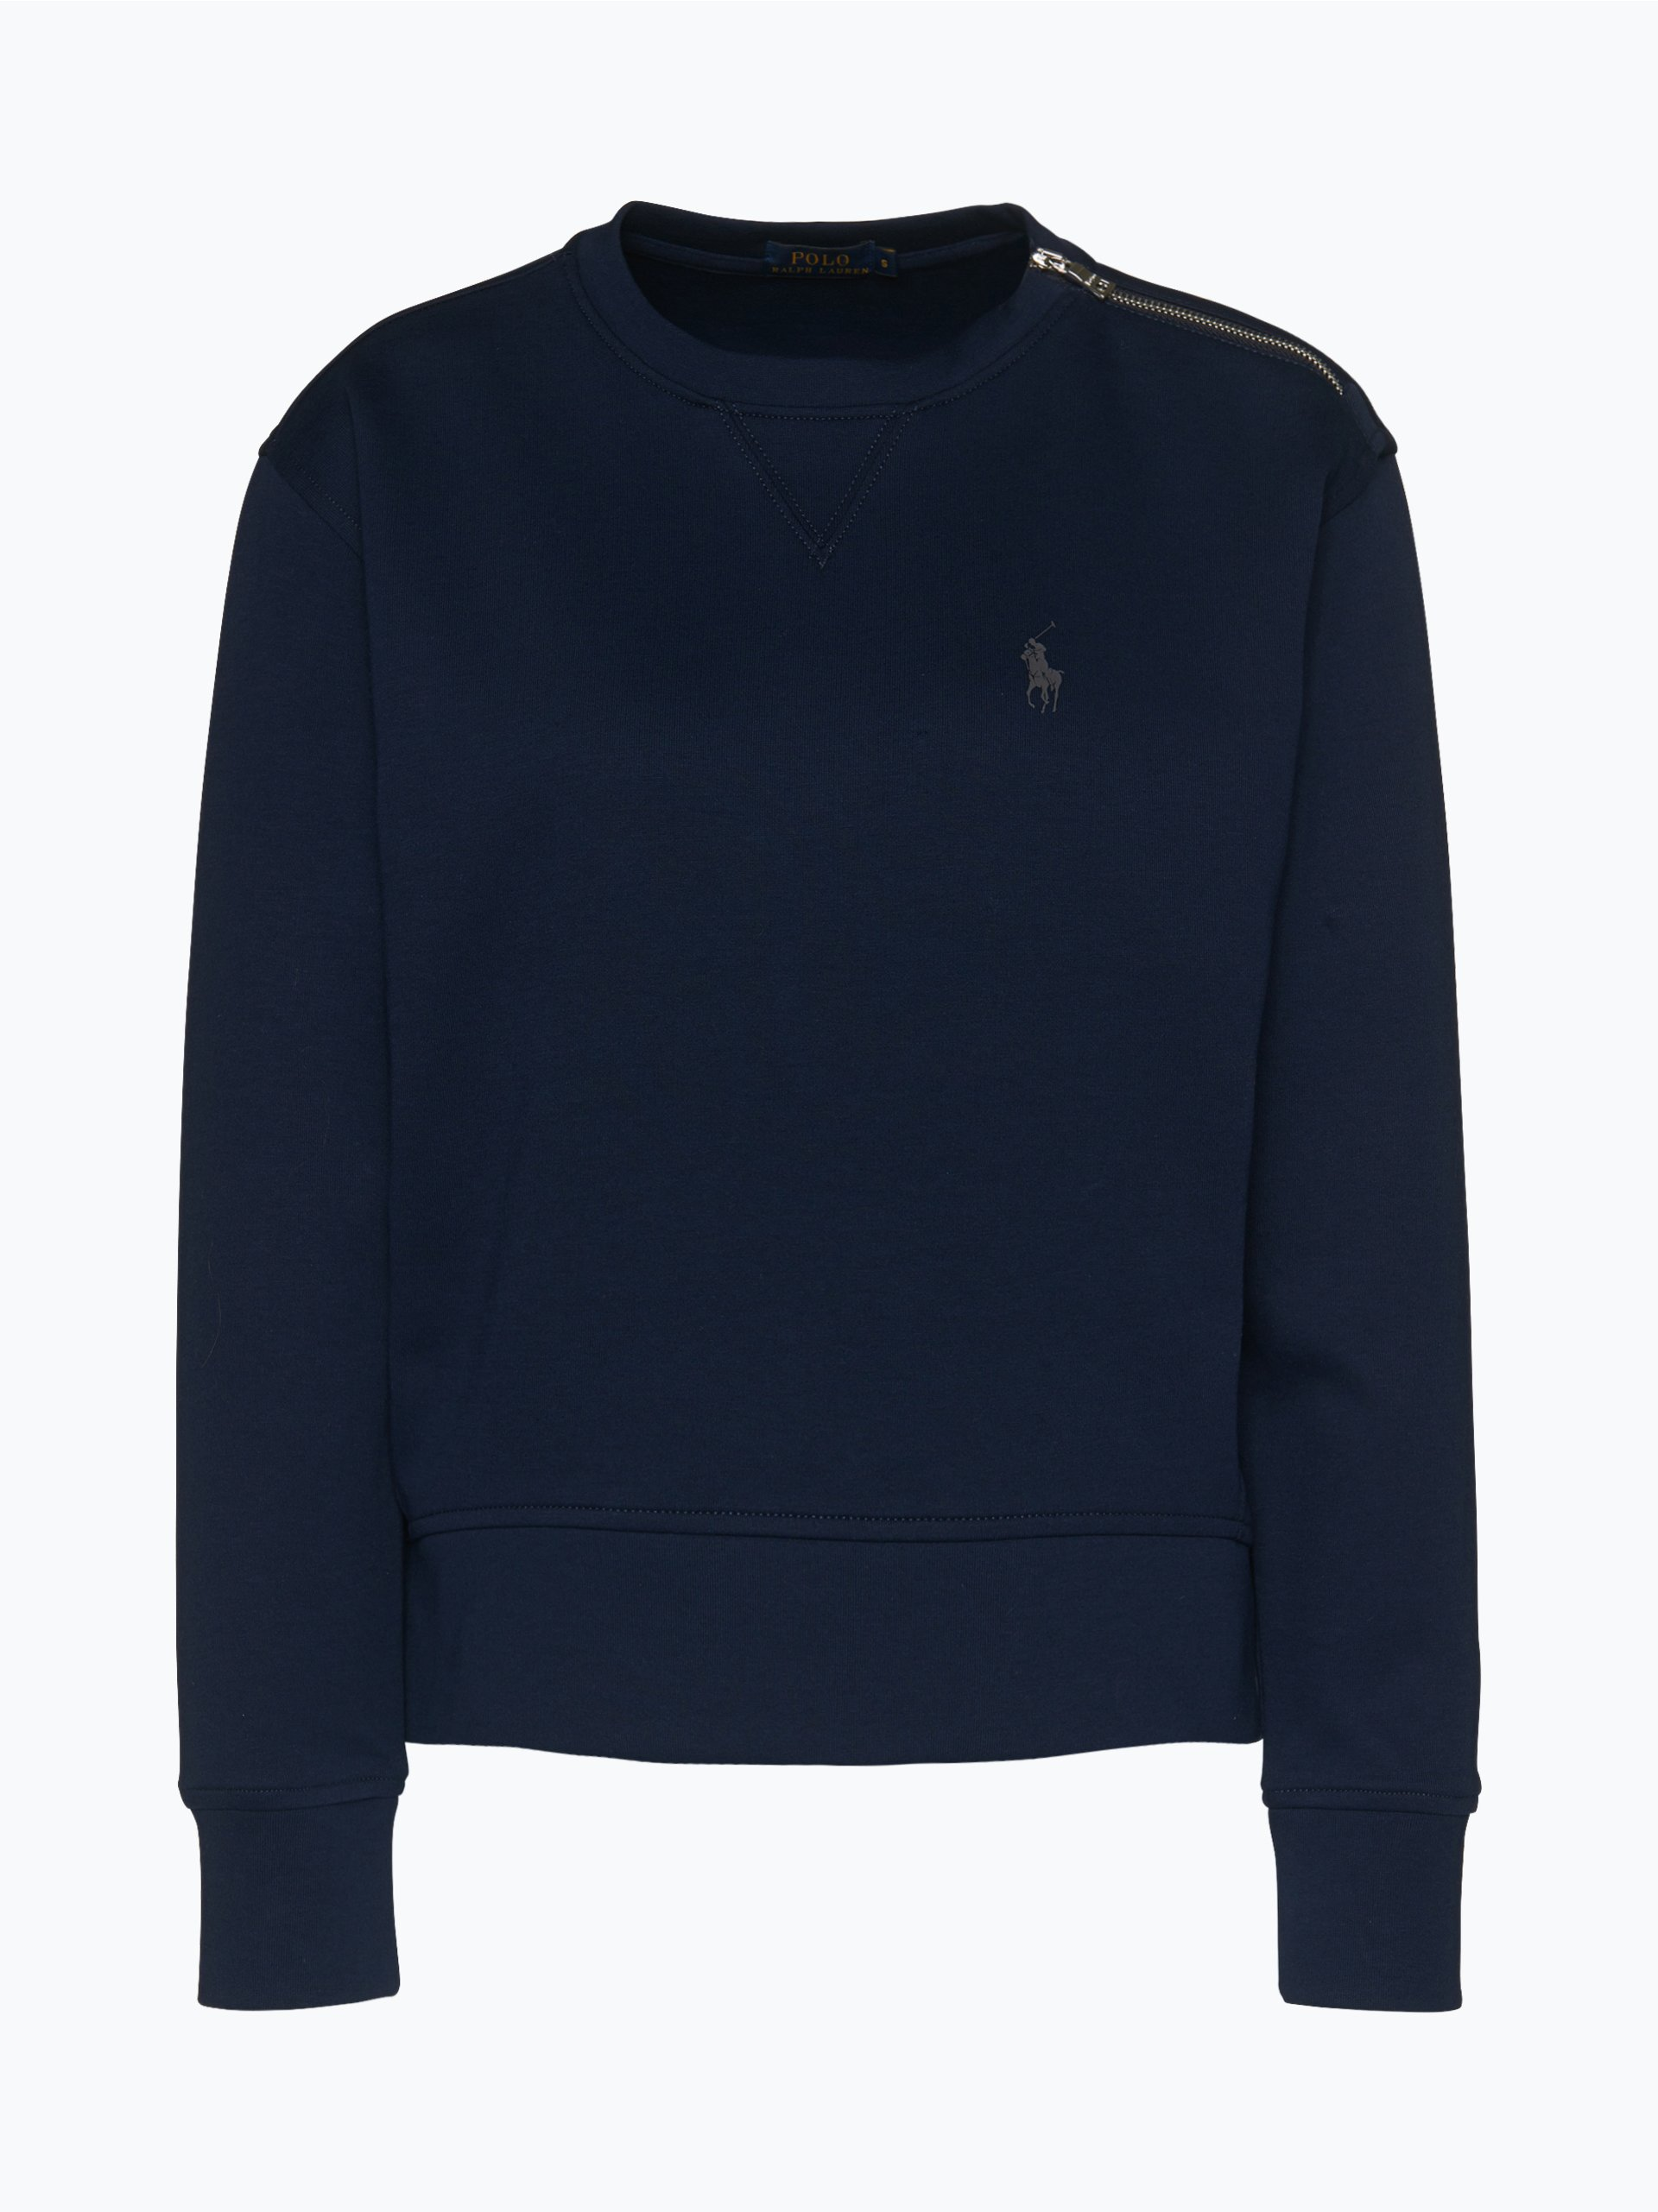 polo ralph lauren damen sweatshirt marine uni online. Black Bedroom Furniture Sets. Home Design Ideas